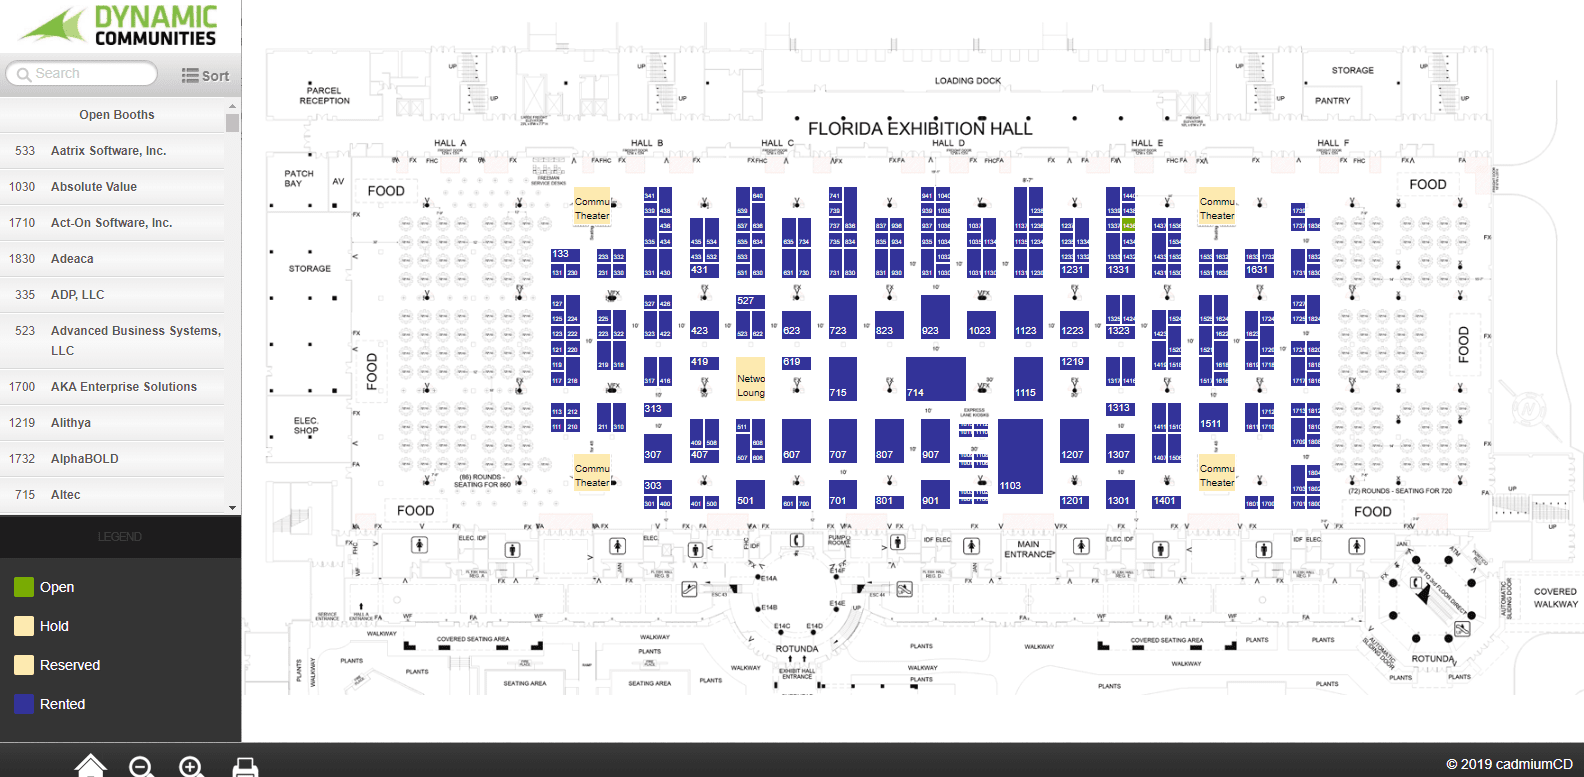 NA User Group Summit Floor Plan